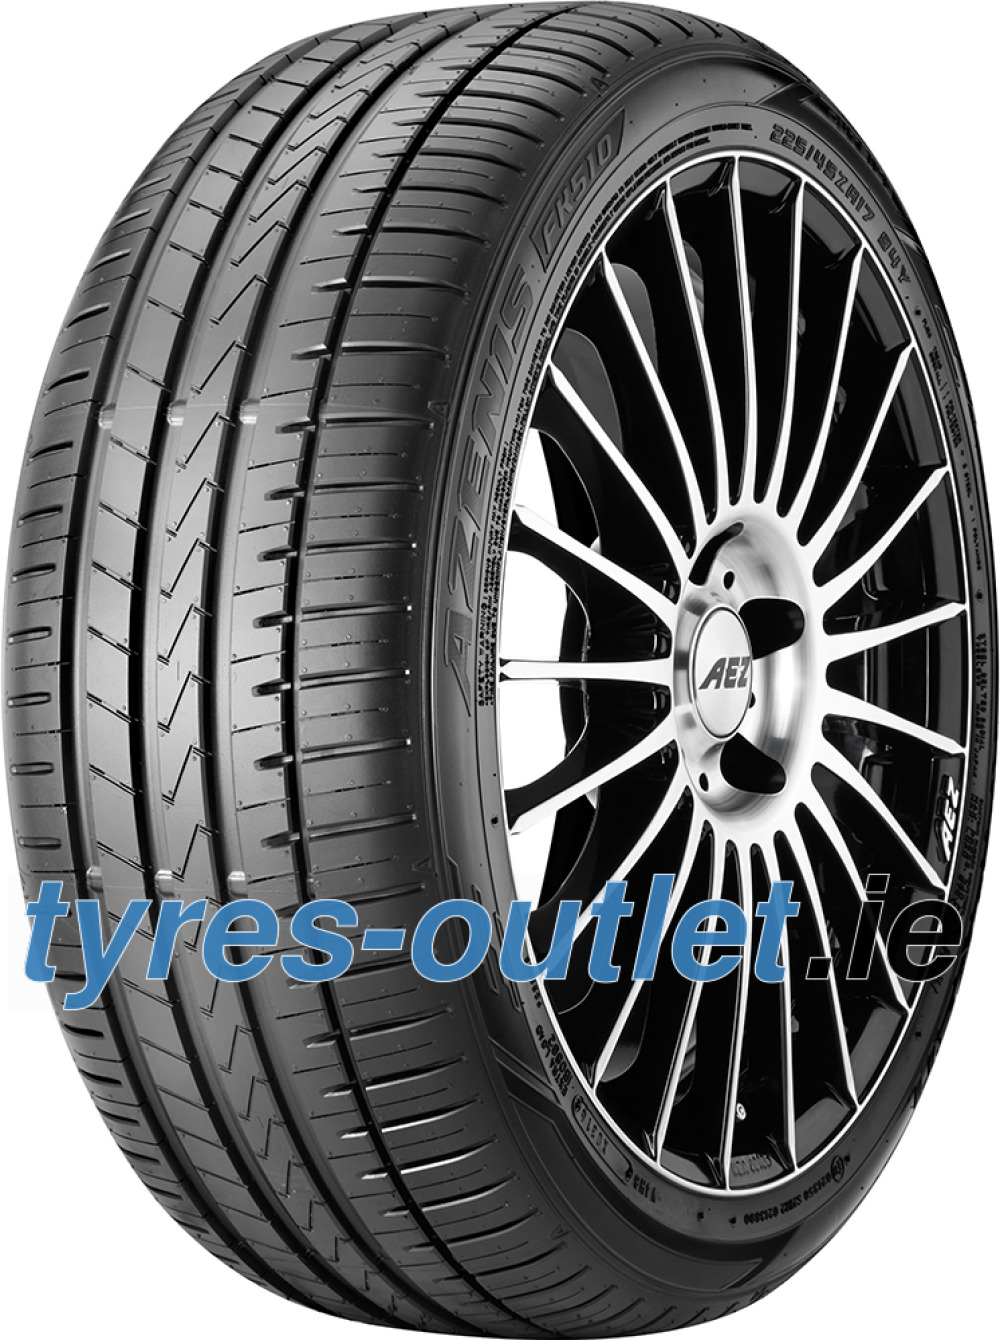 Falken Azenis FK510 ( 235/35 ZR19 (91Y) XL with rim protection (MFS) )